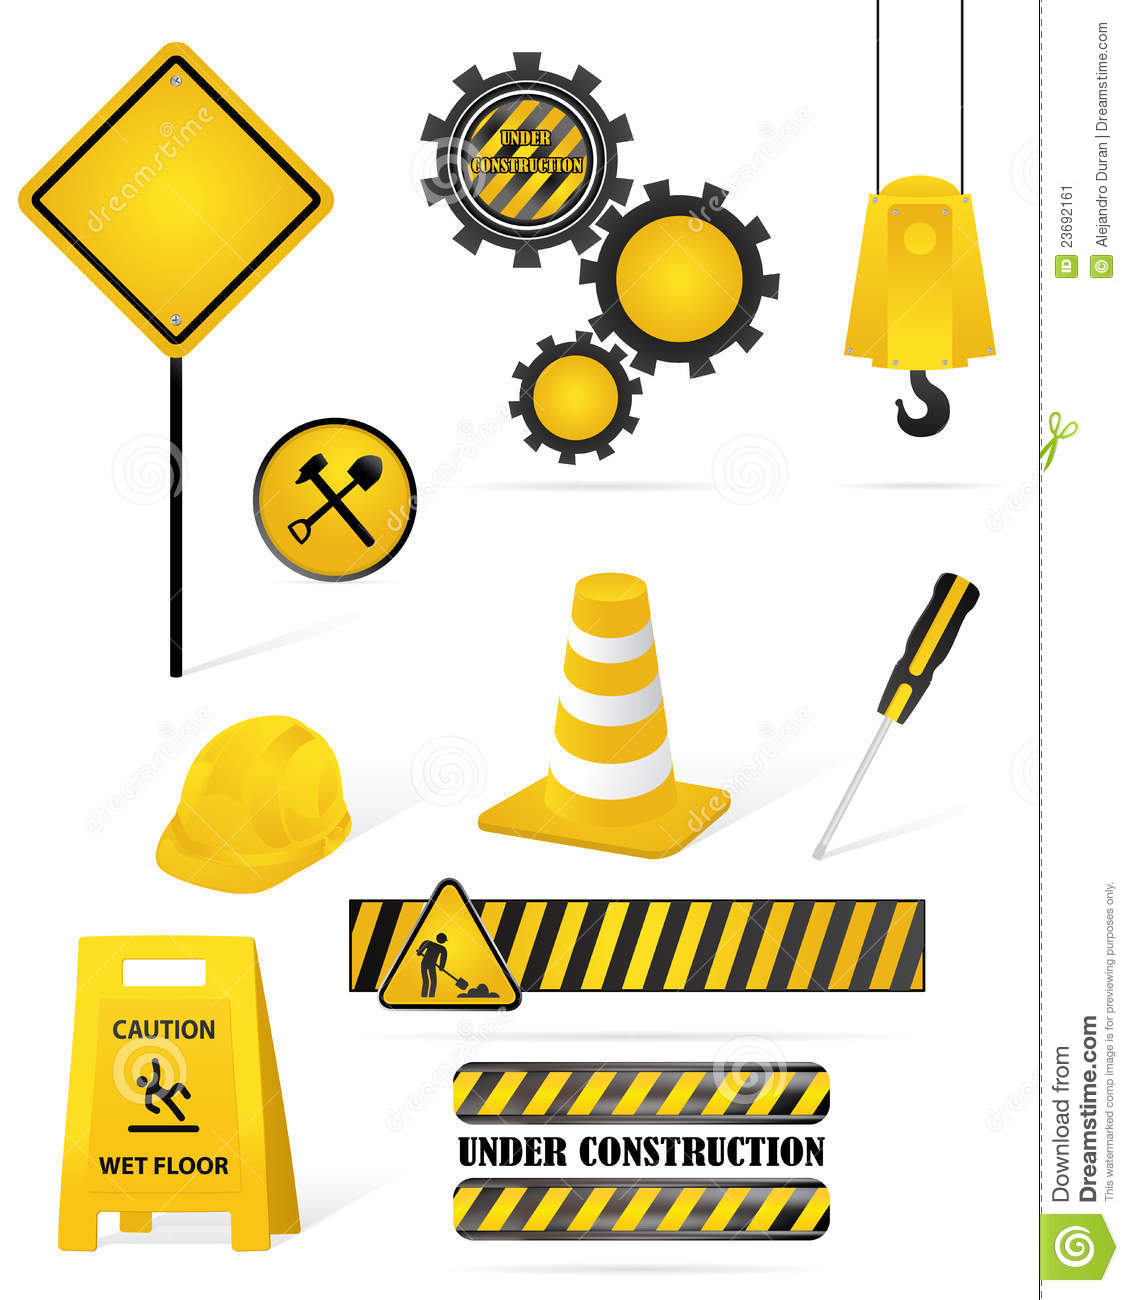 Construction Elements Stock Image.